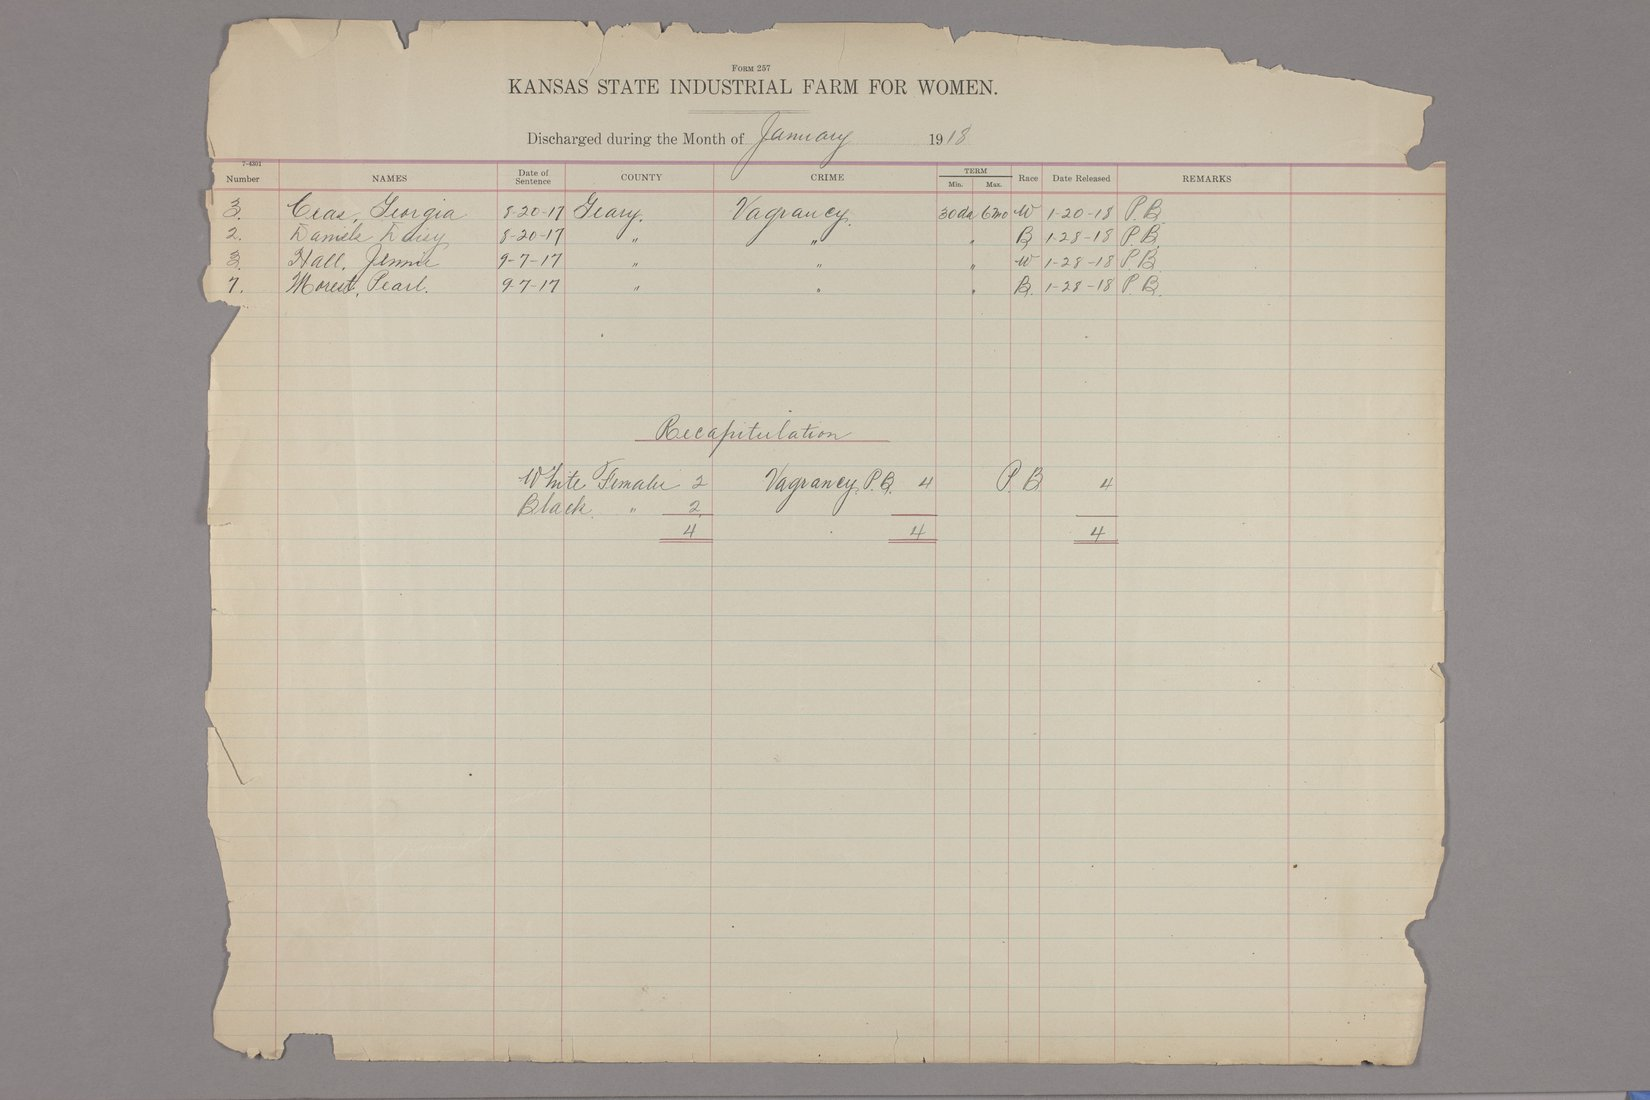 Inmates discharged register, Kansas State Industrial Farm for Women - January, 1918 & recapitulation page